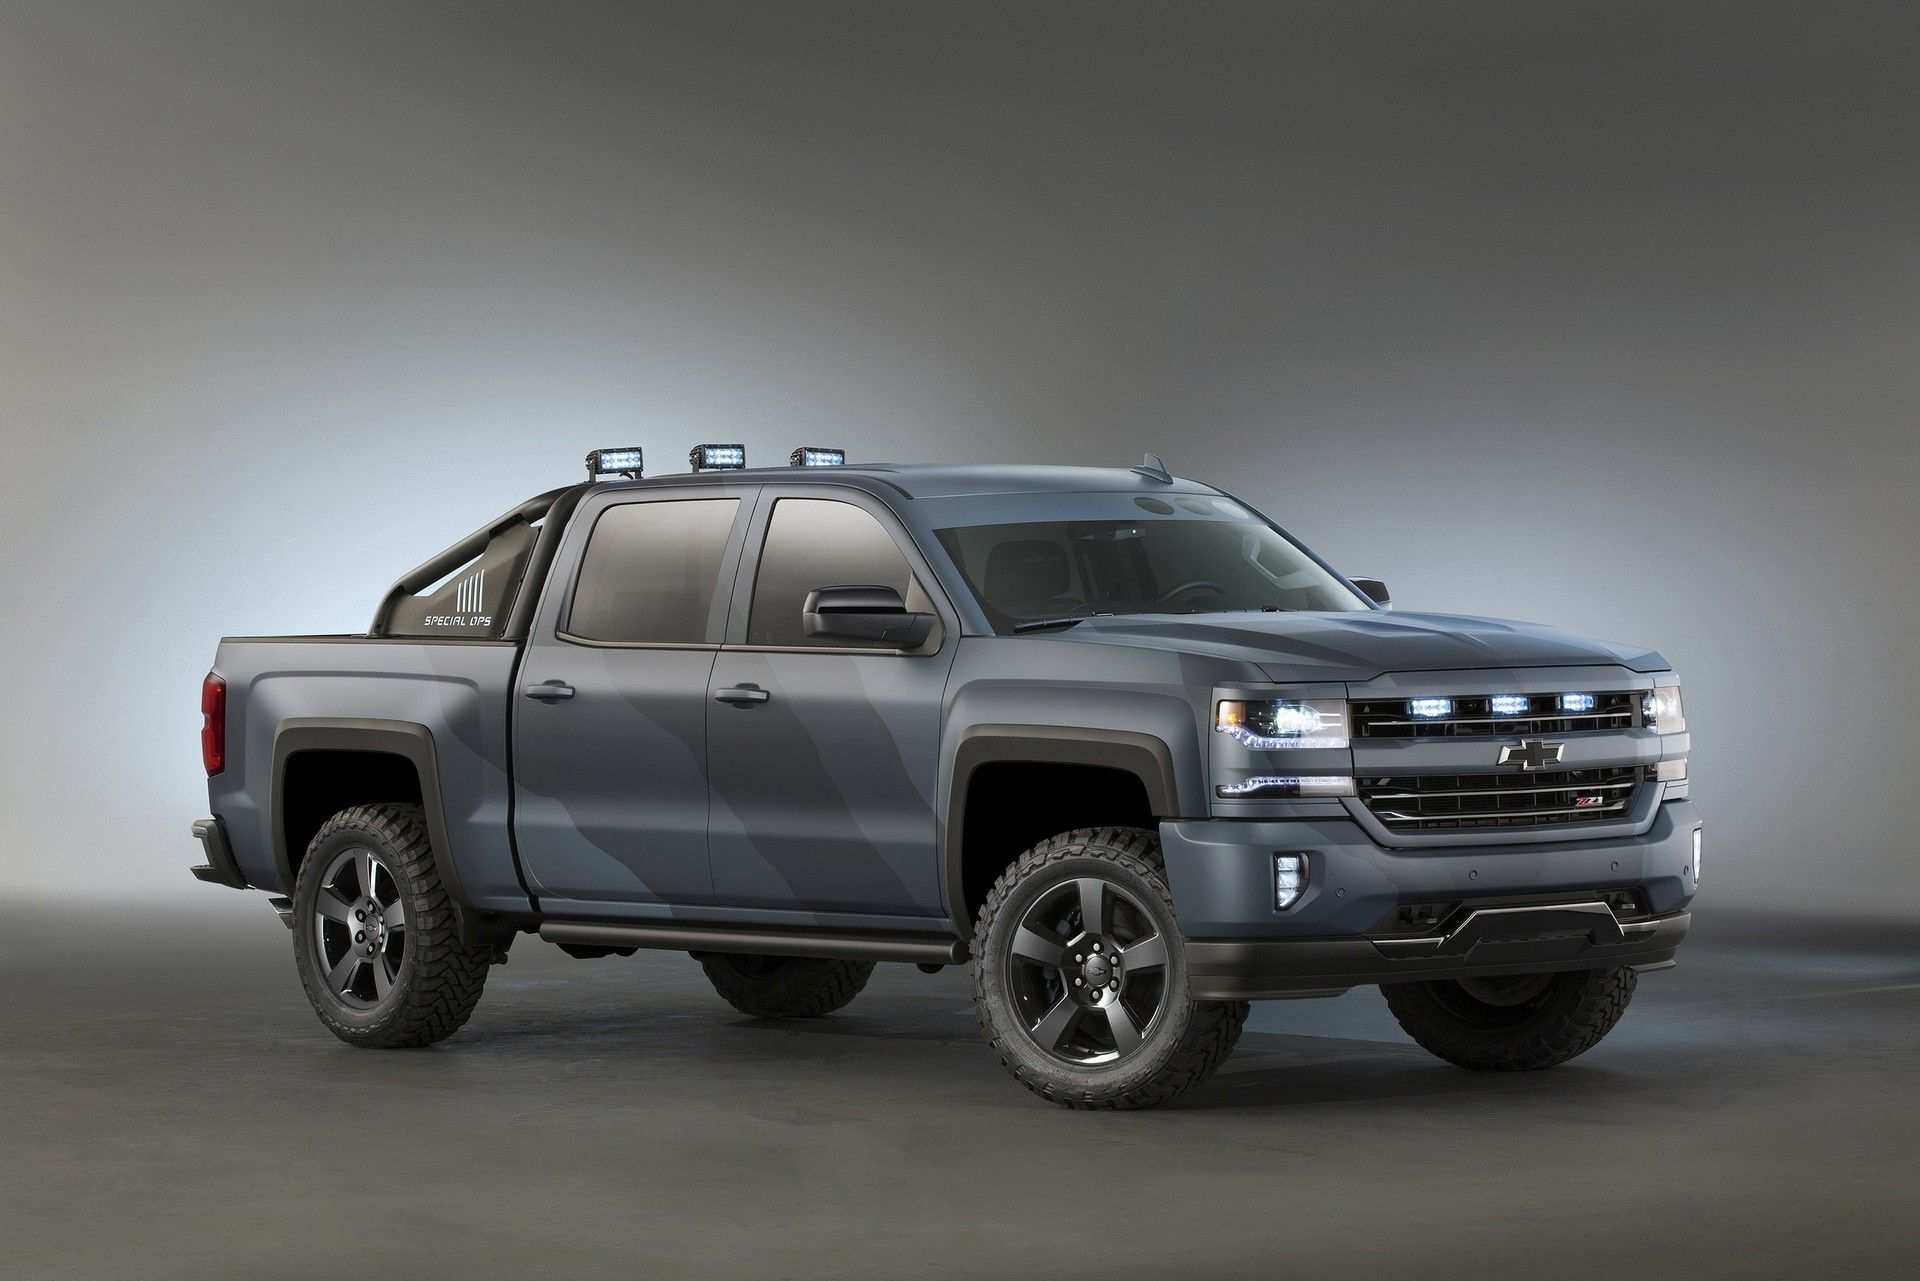 46 All New 2019 Chevrolet Avalanche Spy Shoot for 2019 Chevrolet Avalanche